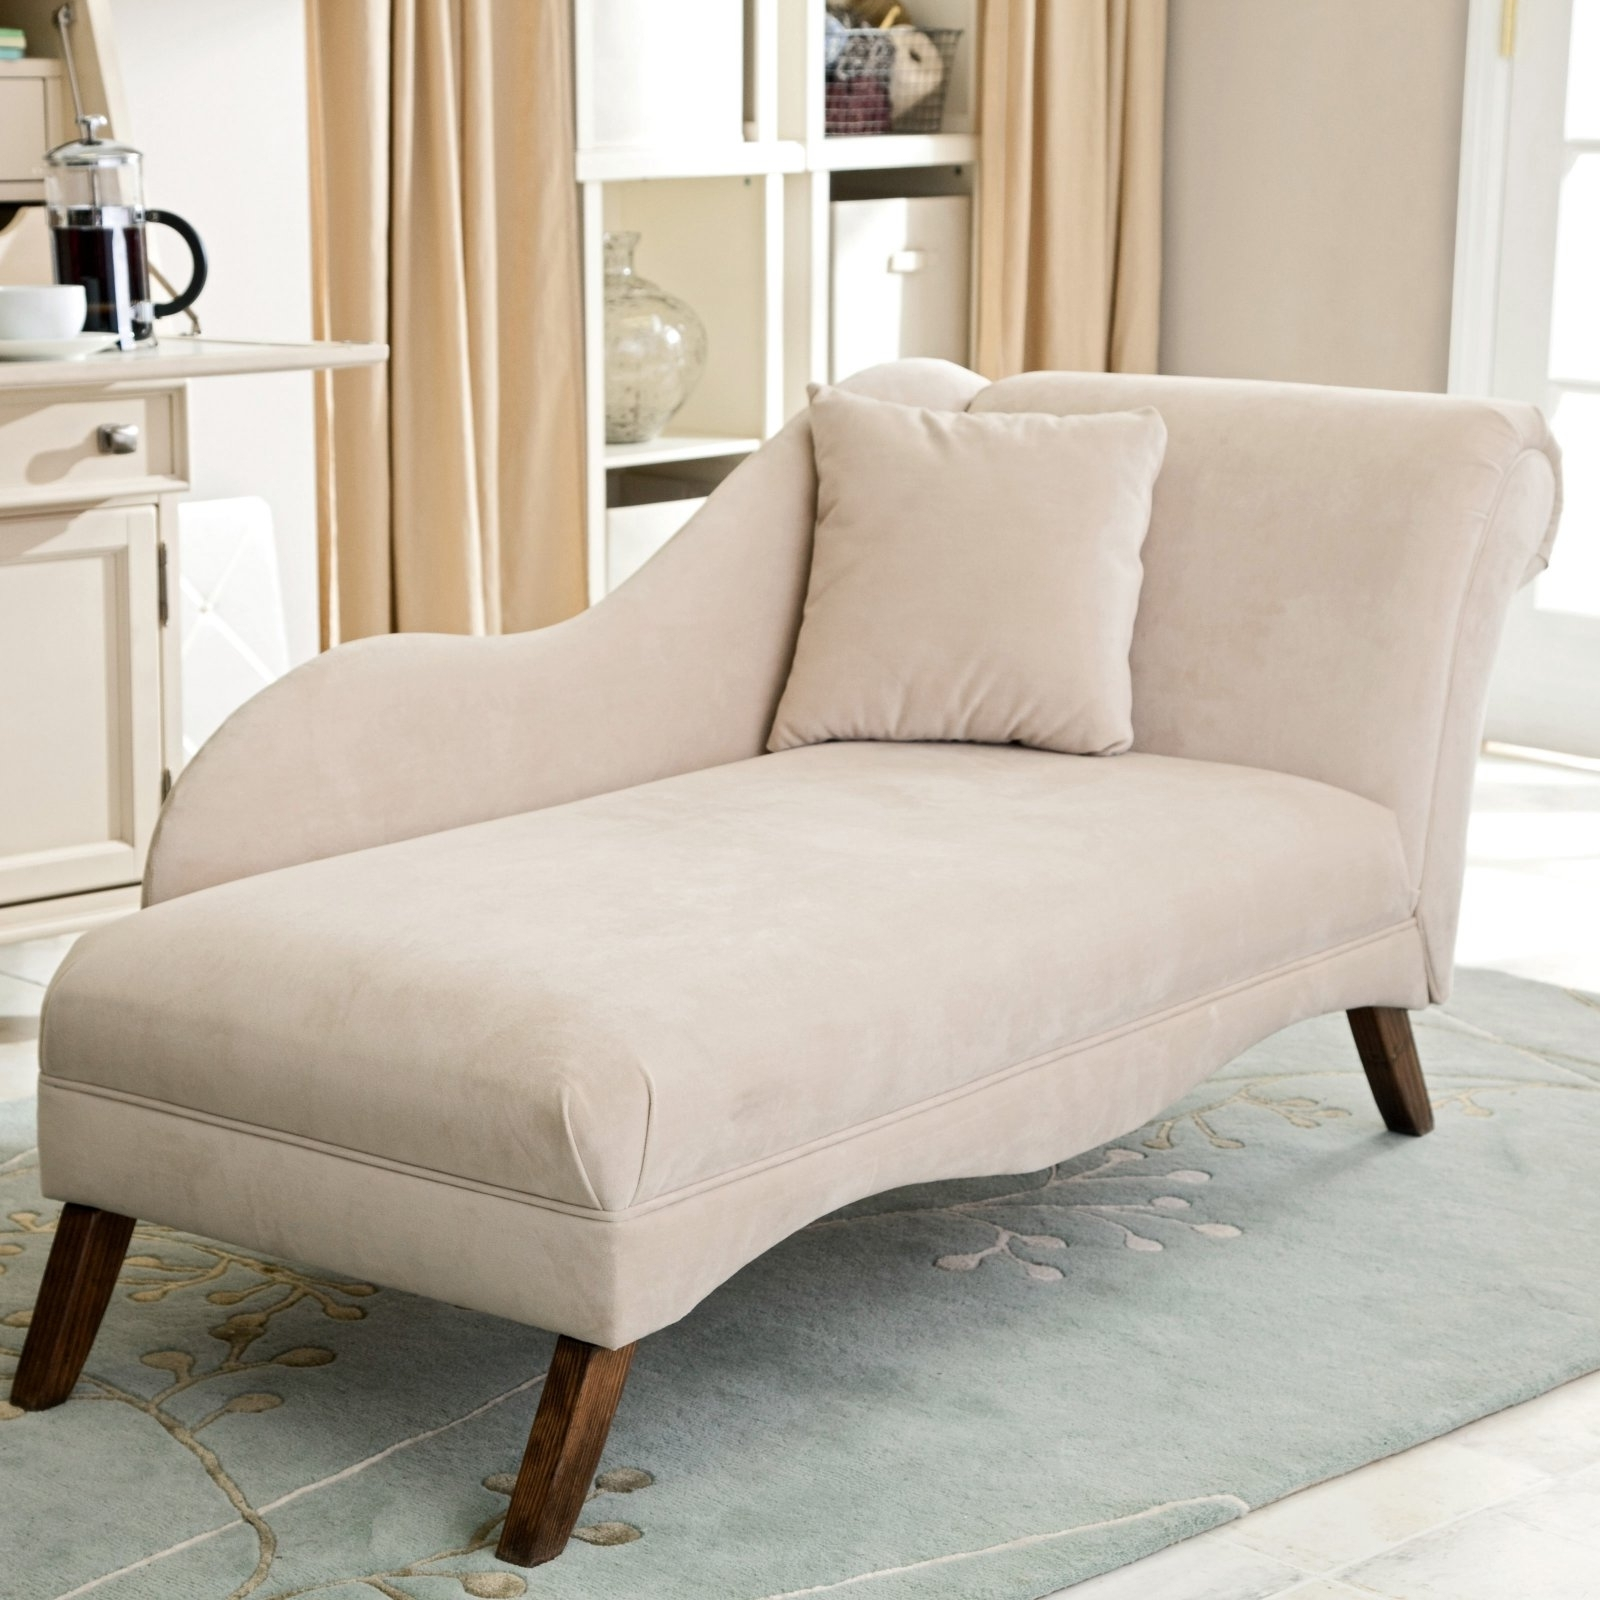 Popular Chaise Chairs For Bedroom In Grandiose Beige Fabric Upholstery Chaise Lounge With Wooden Base (View 12 of 15)